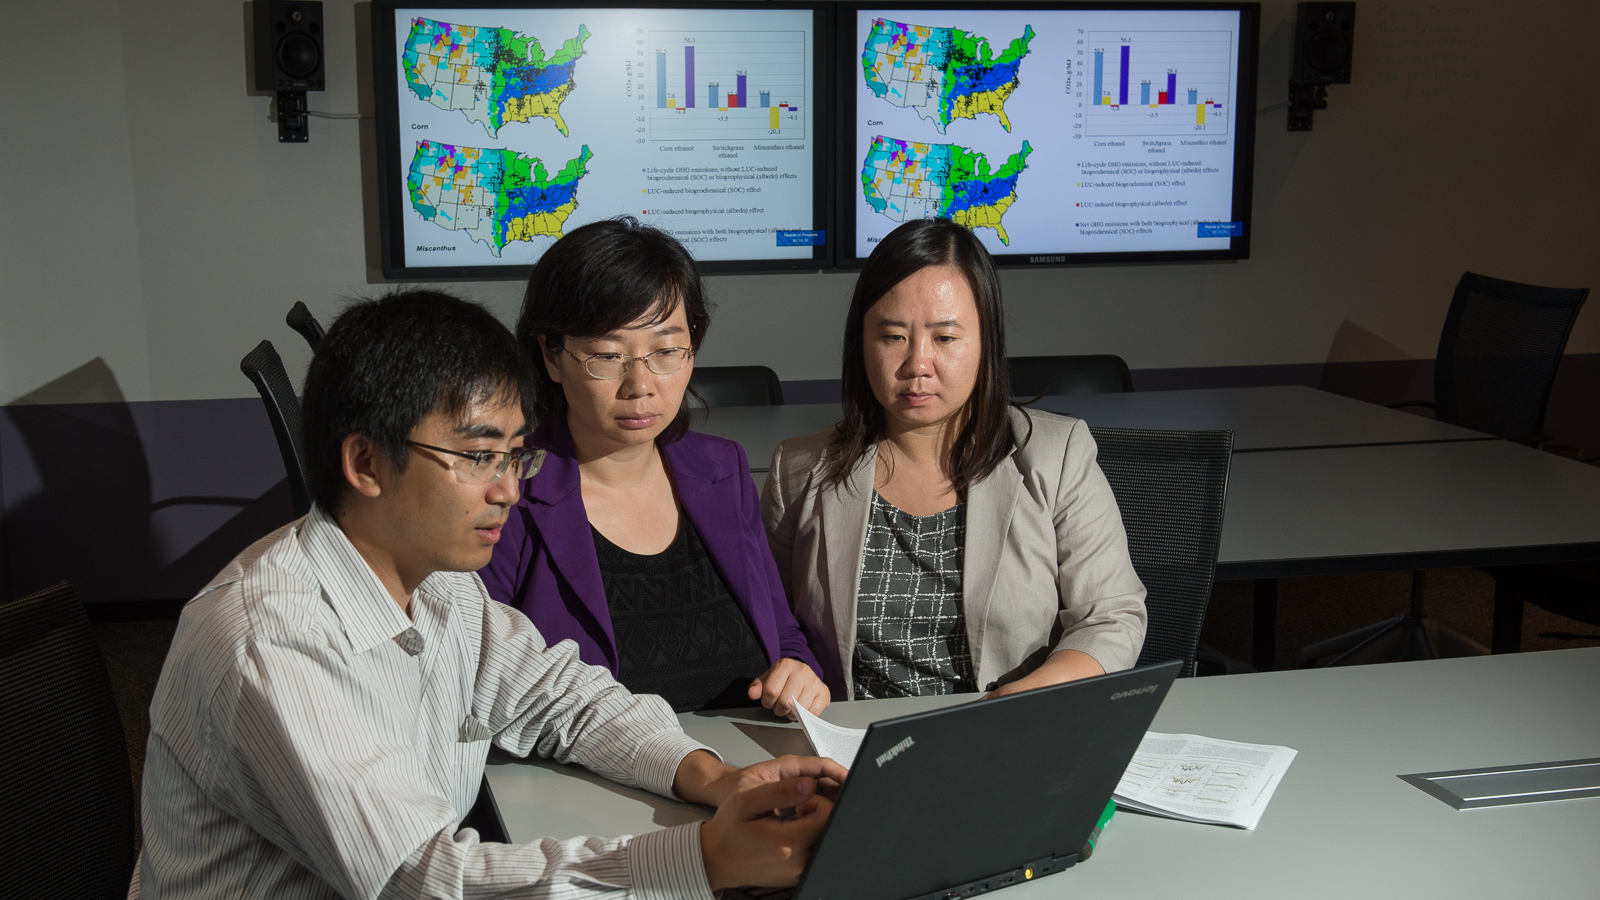 In Cai, Feng and Wang's robust analysis, they investigated albedo effects and land usage in millions of sites across the U.S.